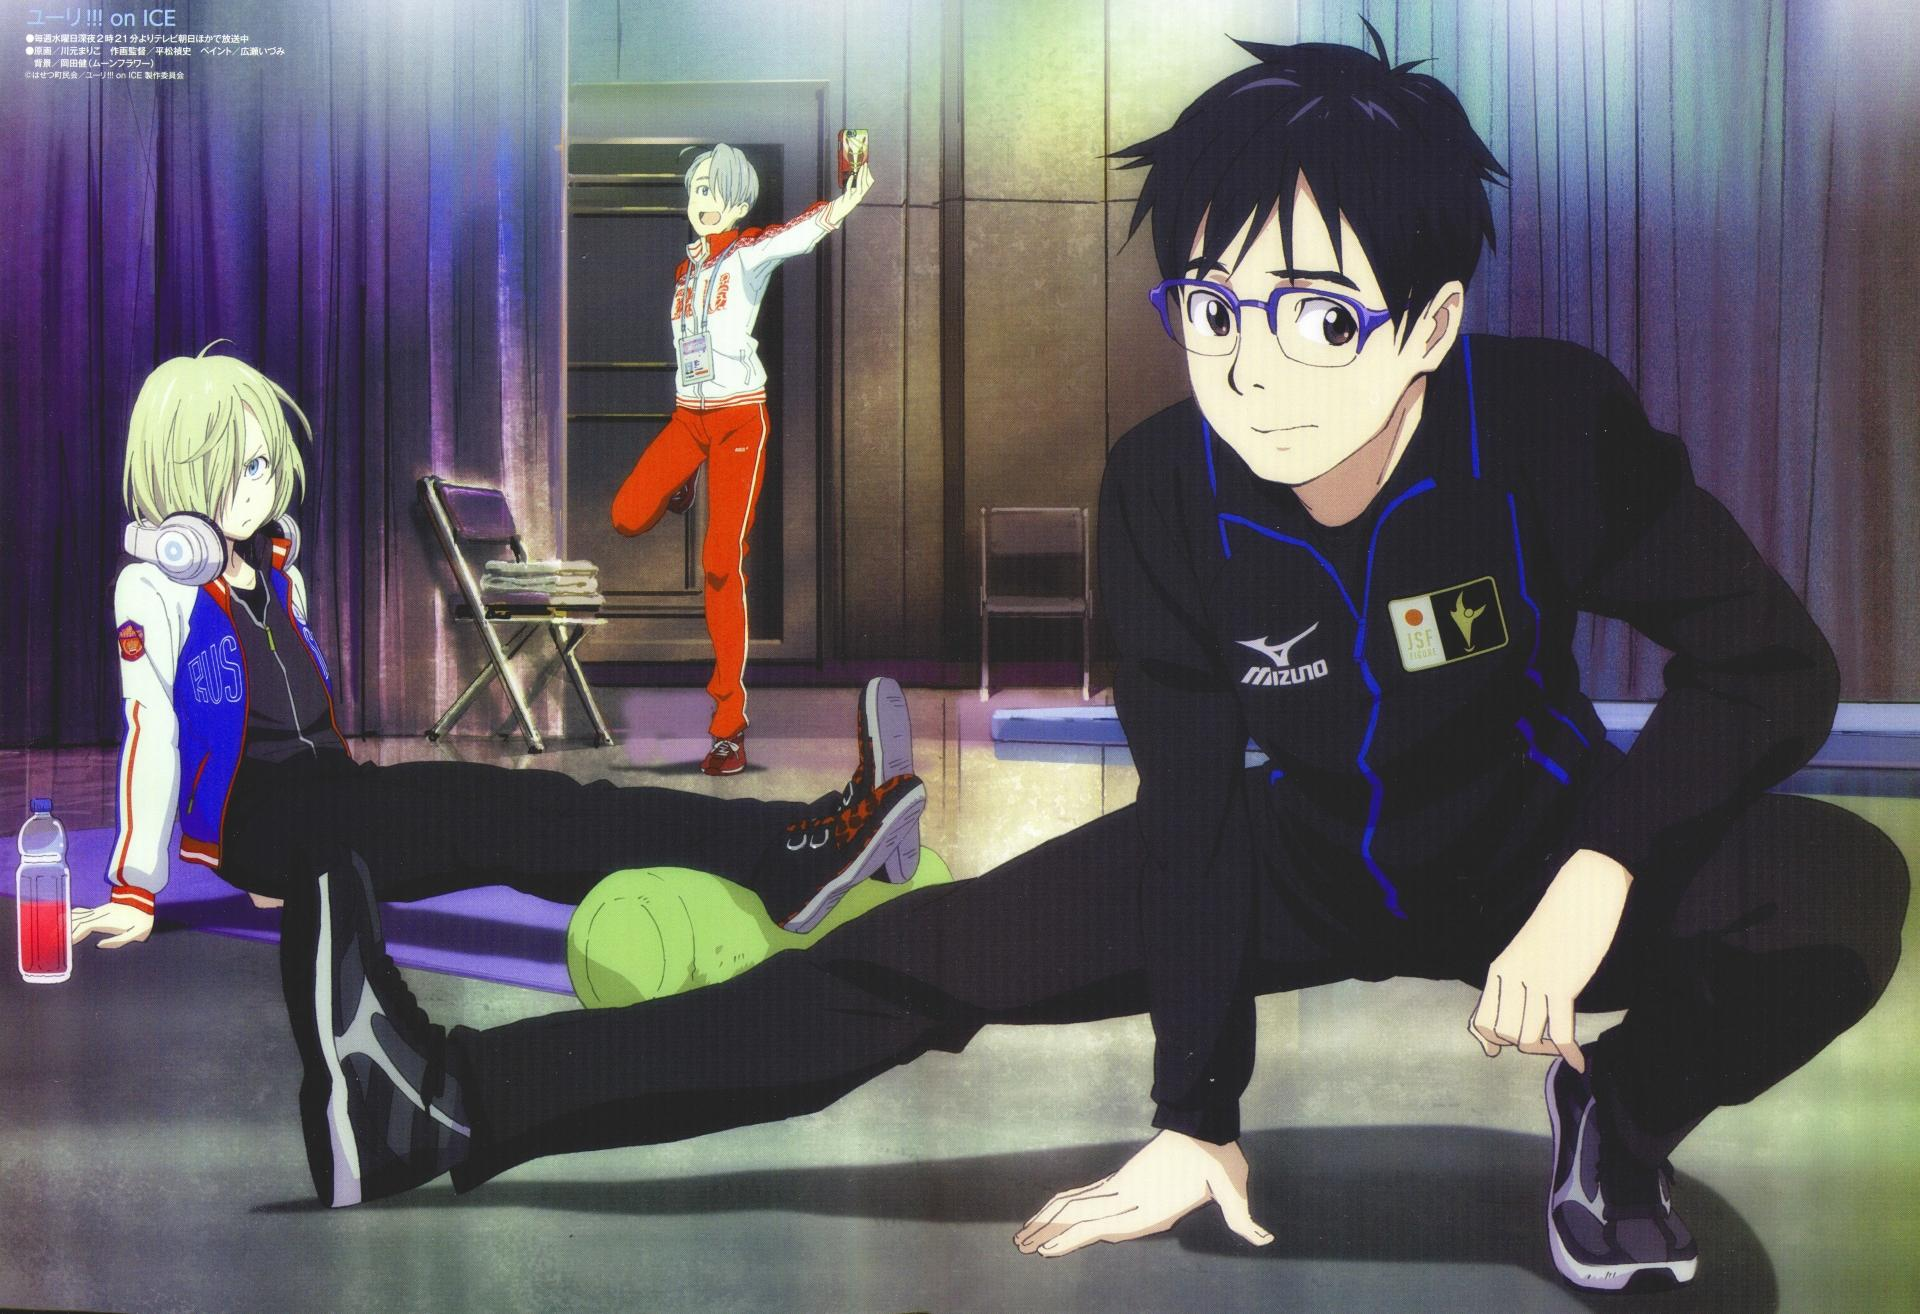 yuri on ice wallpaper hd download